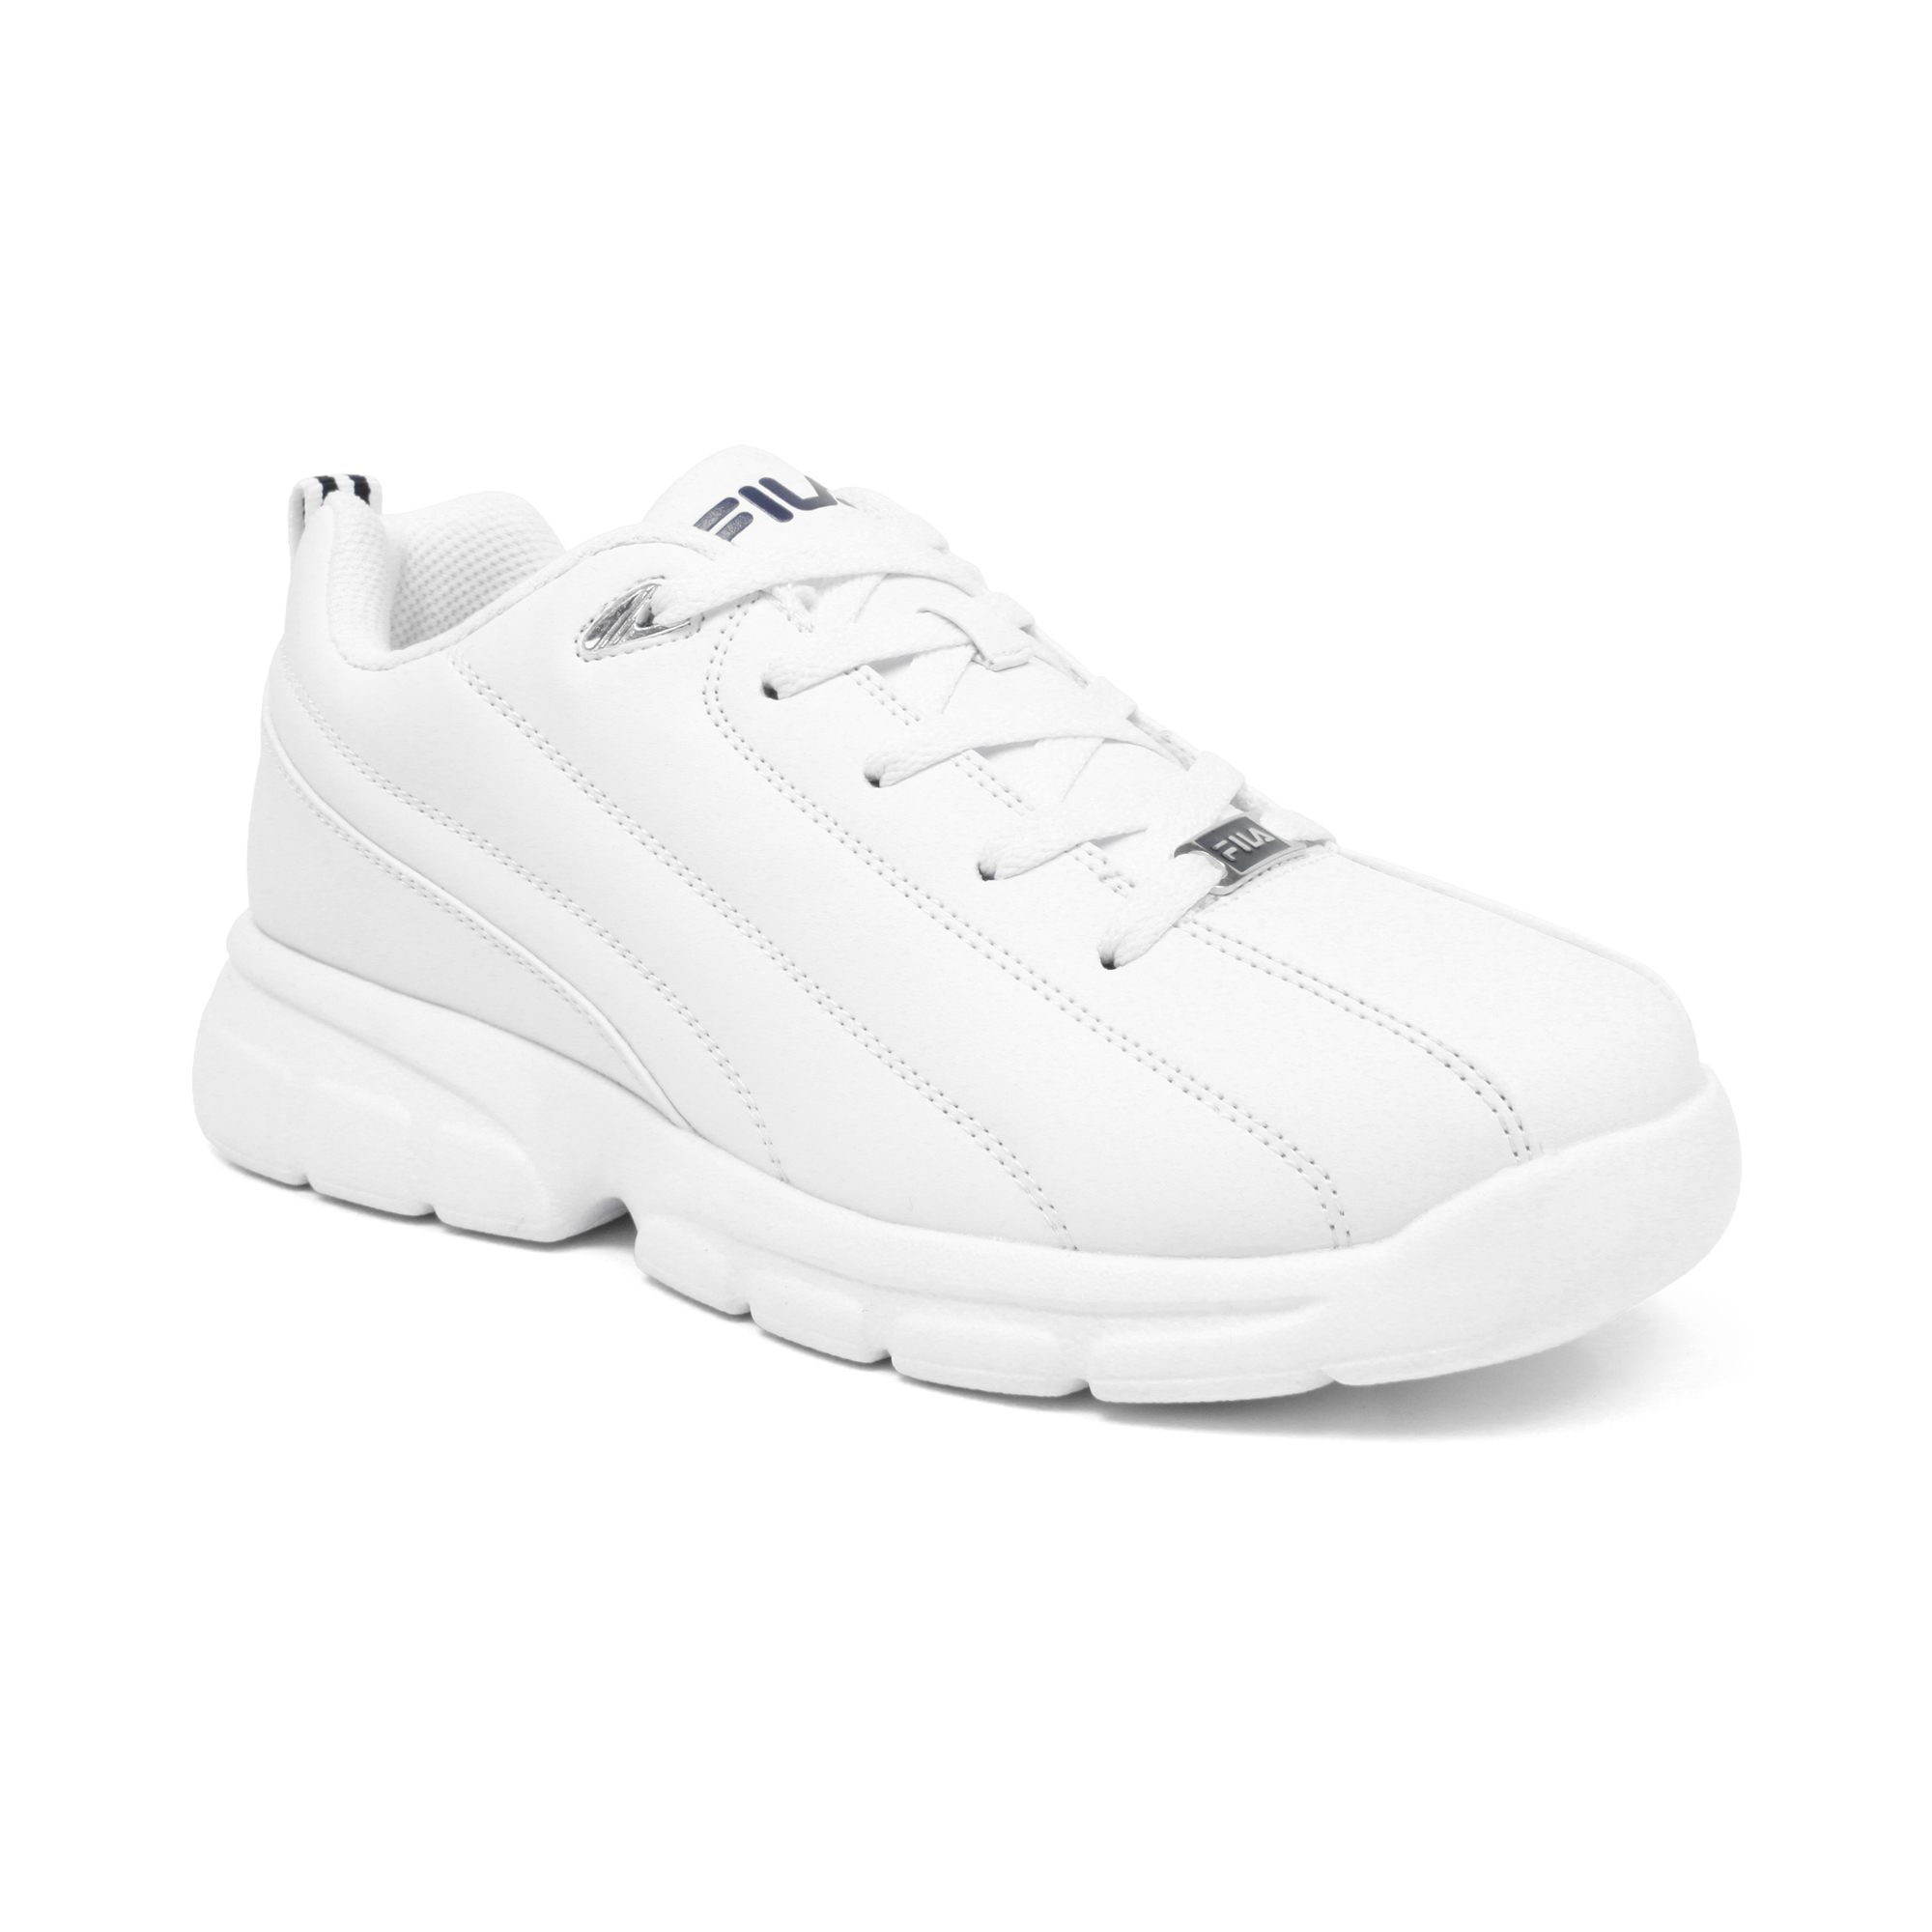 Fila-Men-039-s-Leverage-Casual-Shoe